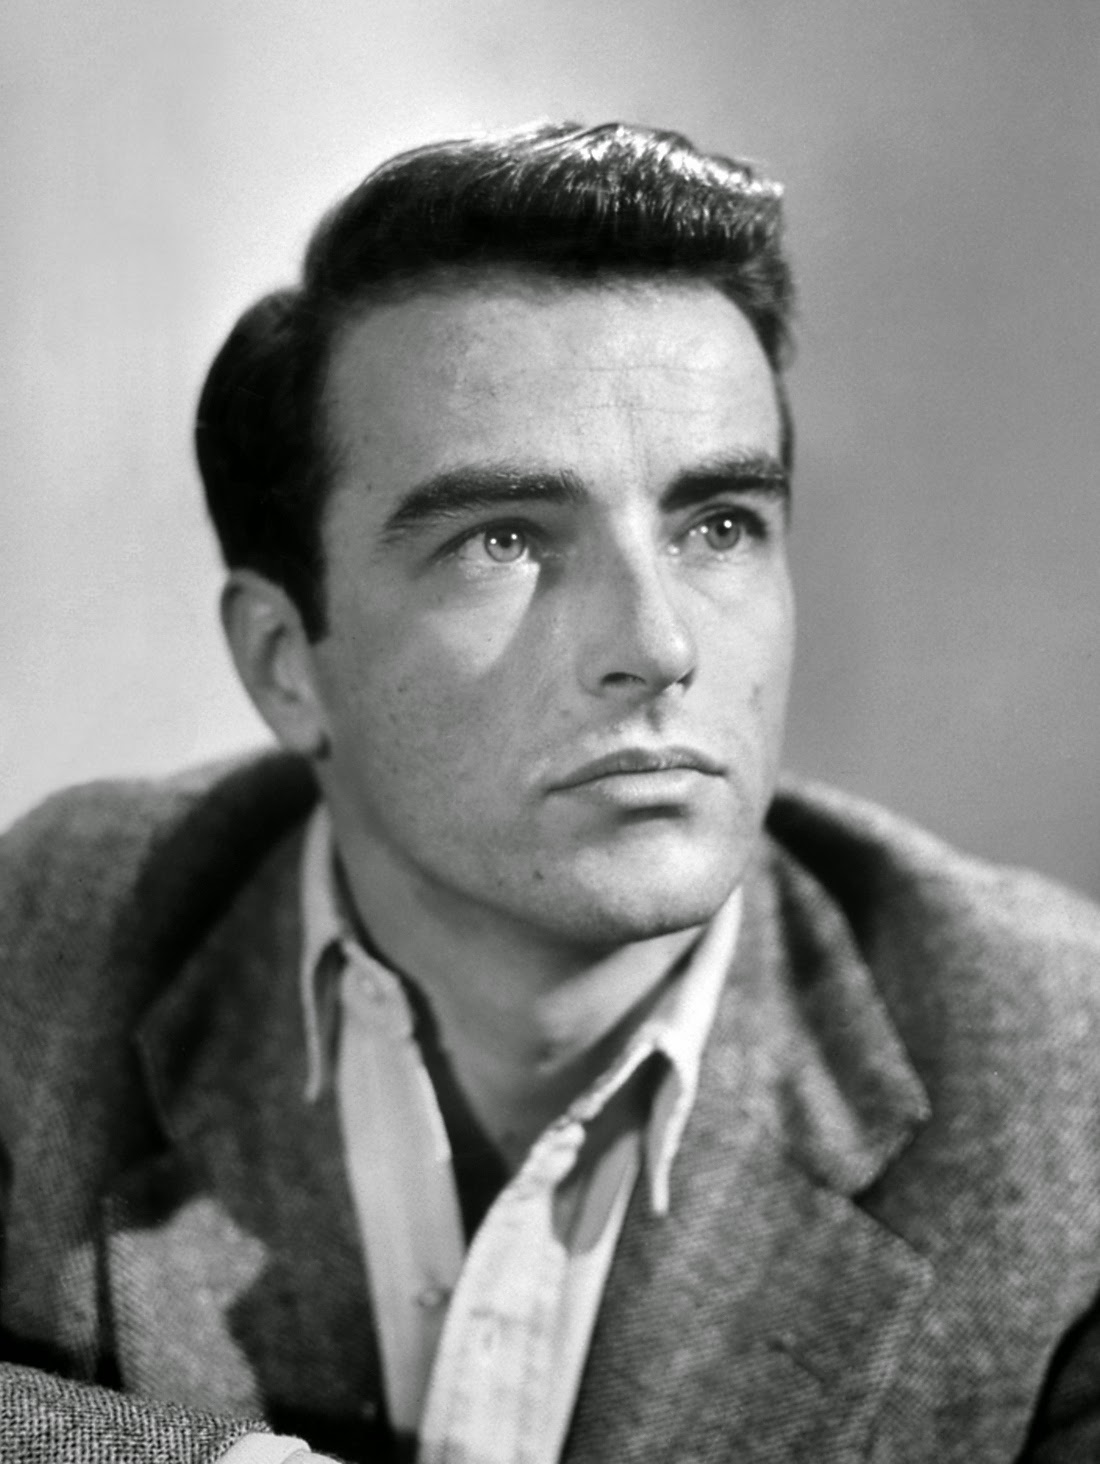 black and white photo of actor Montgomery Clift